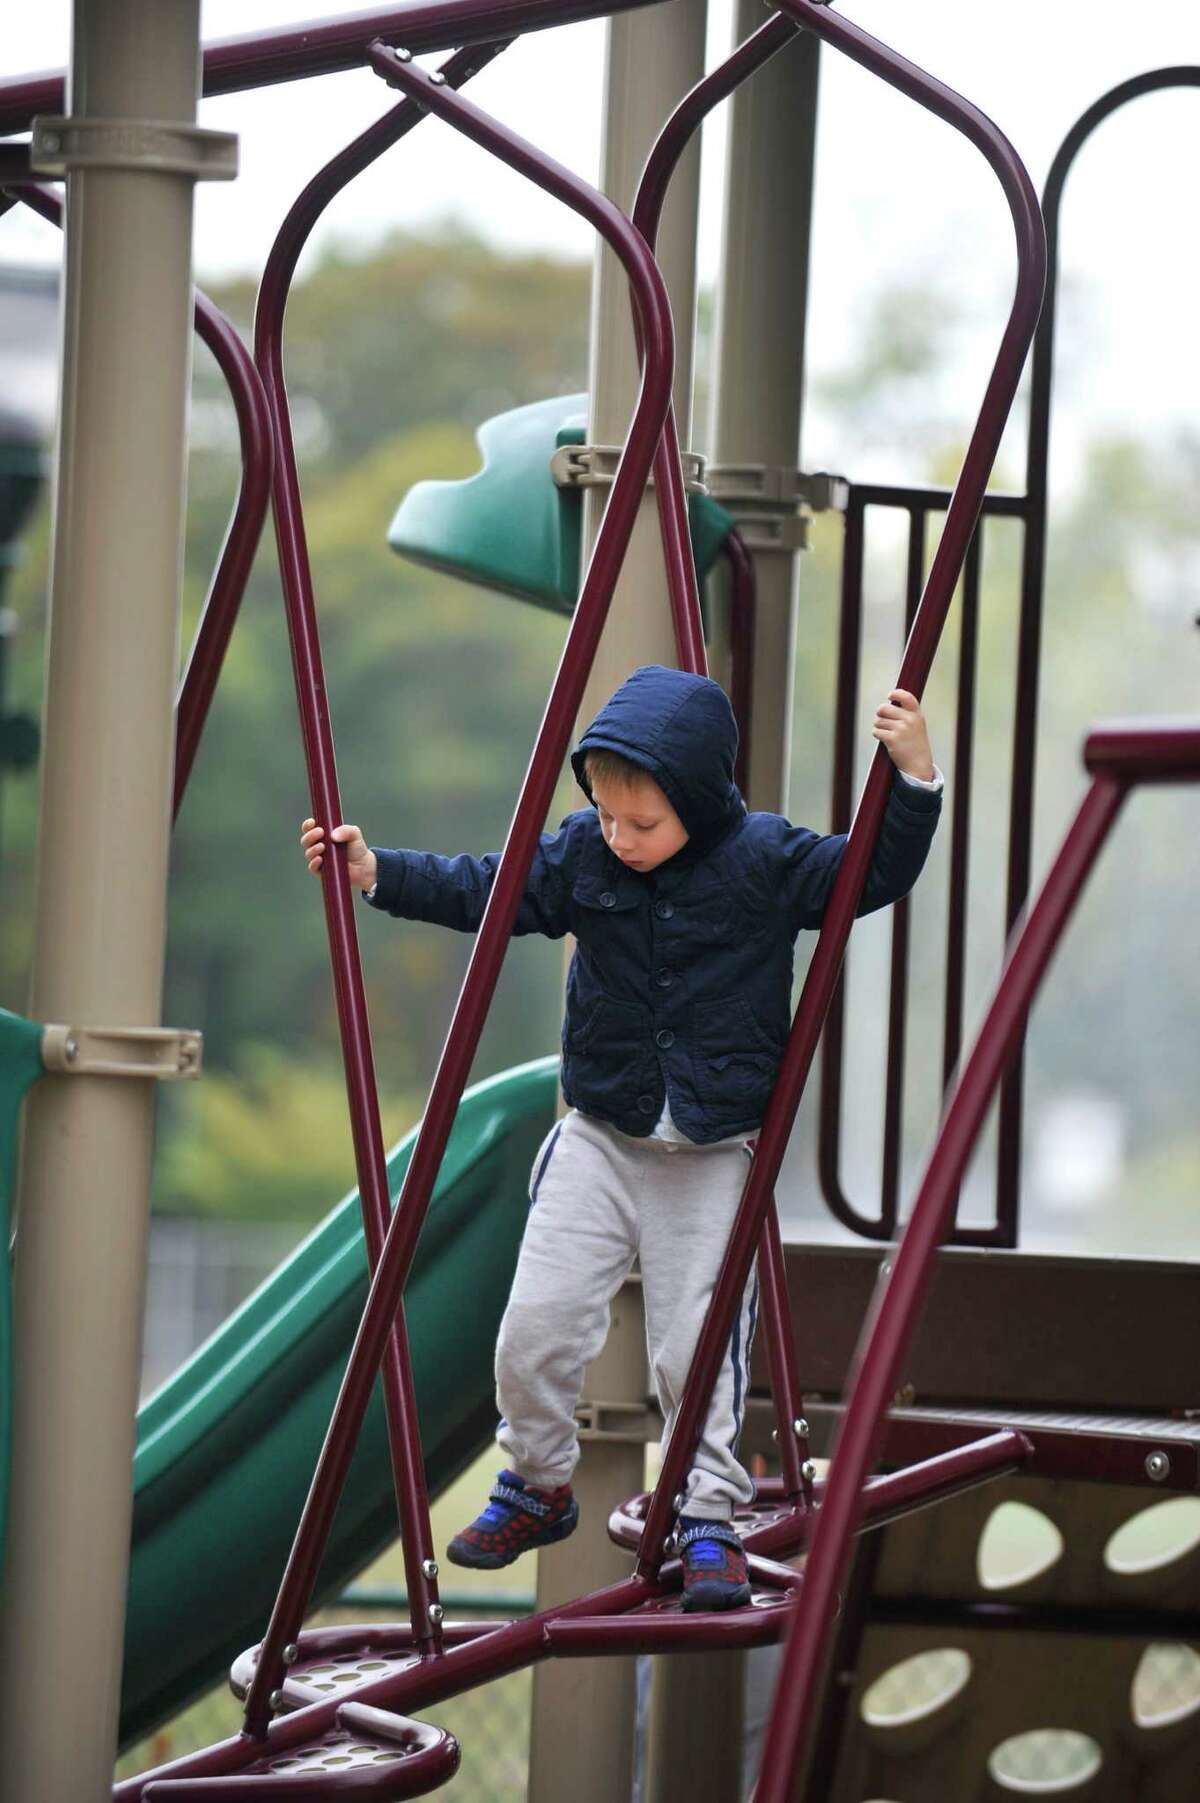 Three year old Lucca Martini, of Stamford, carefully crosses an obstacle on the Scalzi Park playground on Thursday, Oct. 22, 2015.